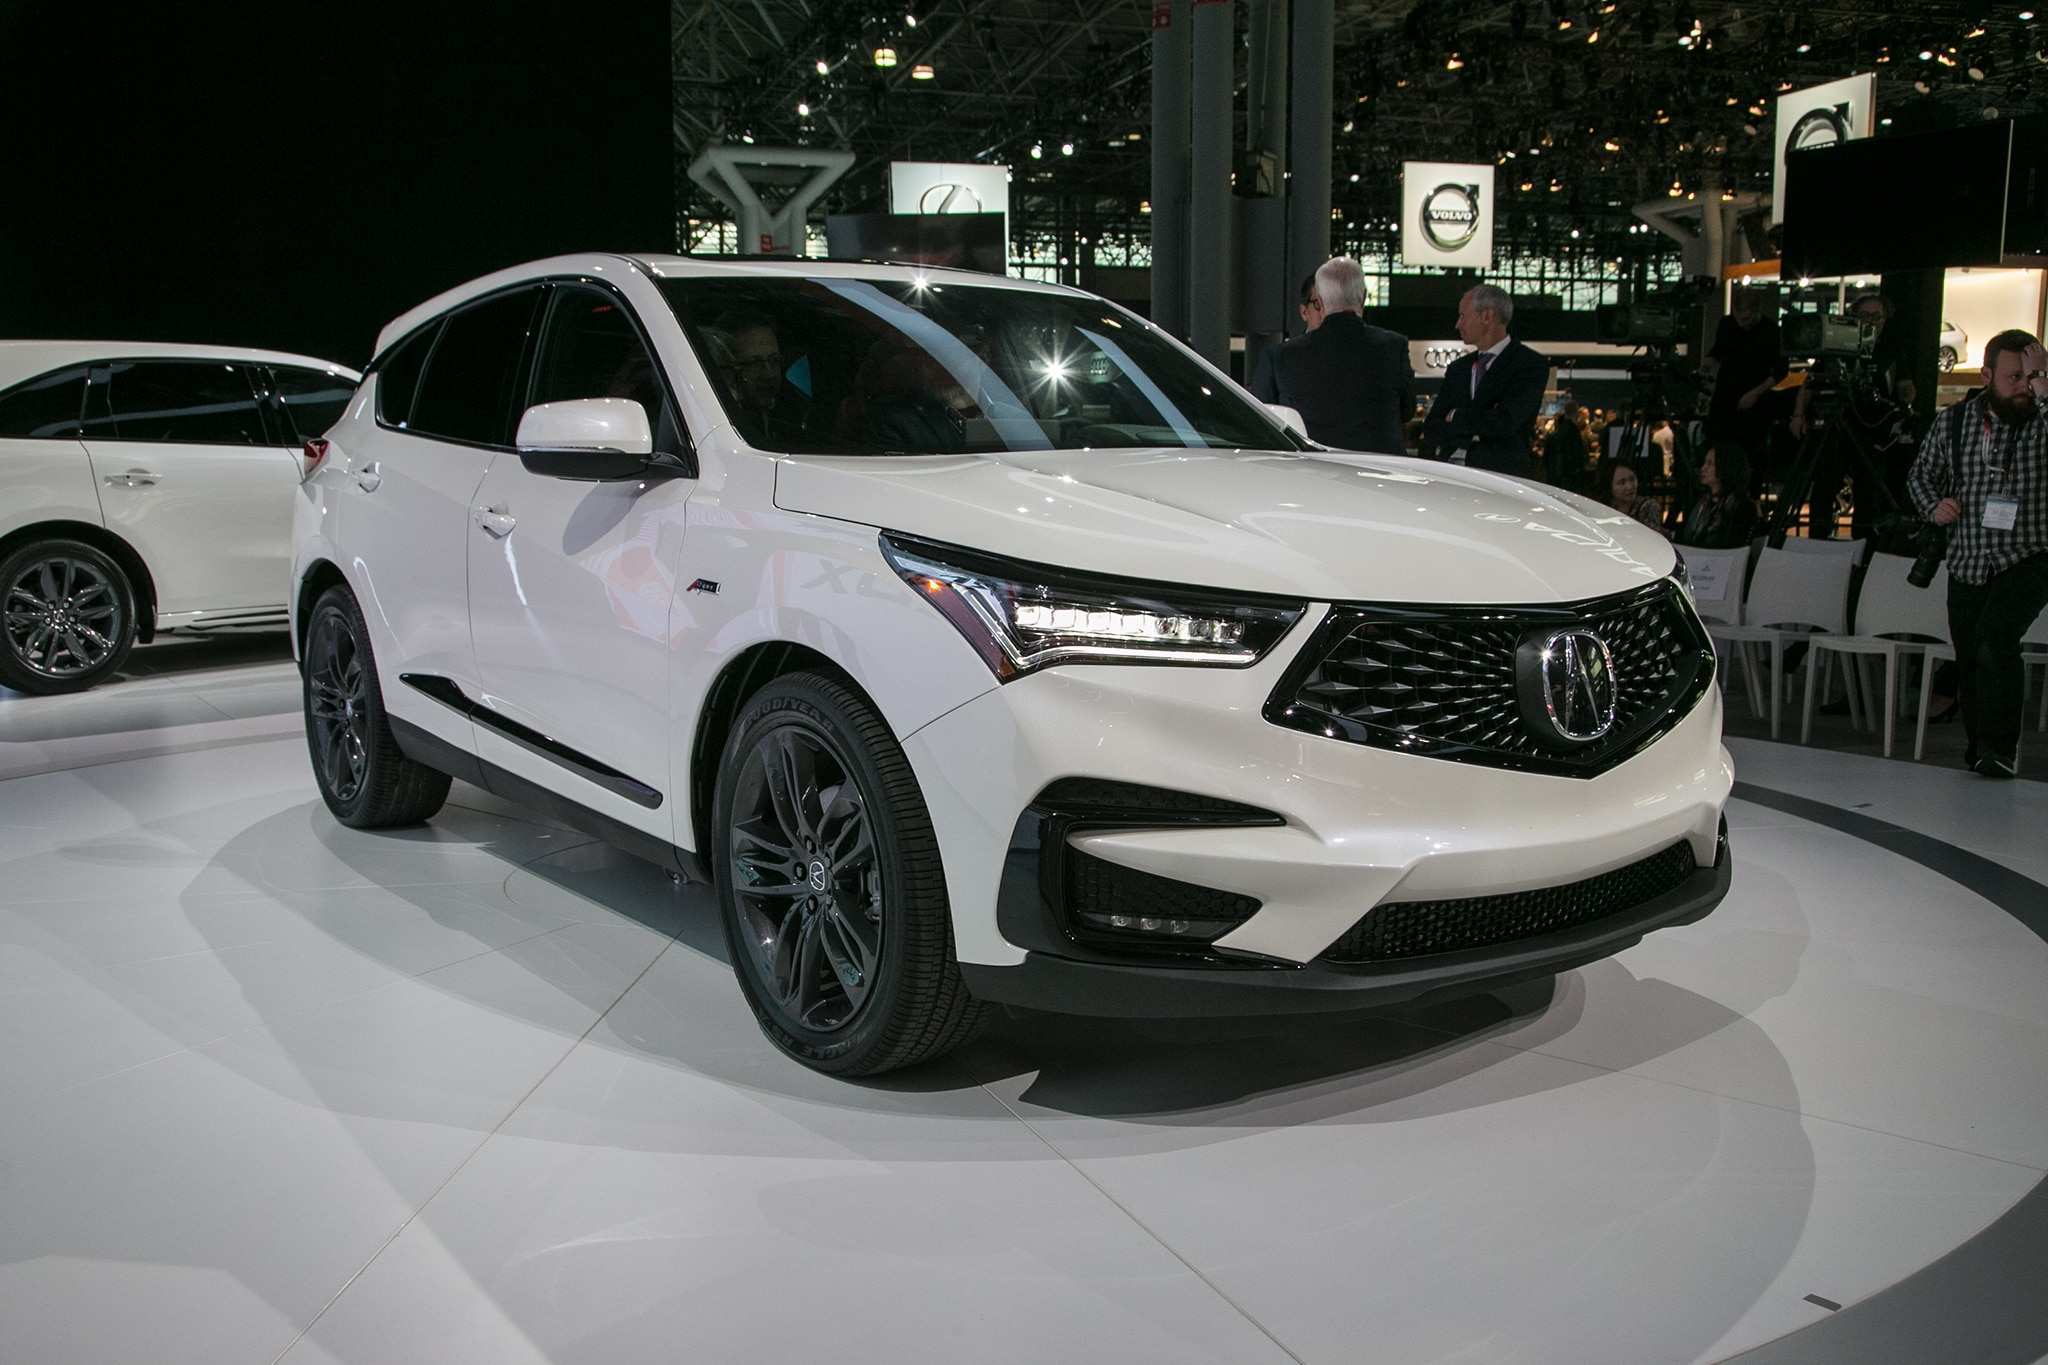 98 Great 2019 Acura Zdx Redesign and Concept for 2019 Acura Zdx